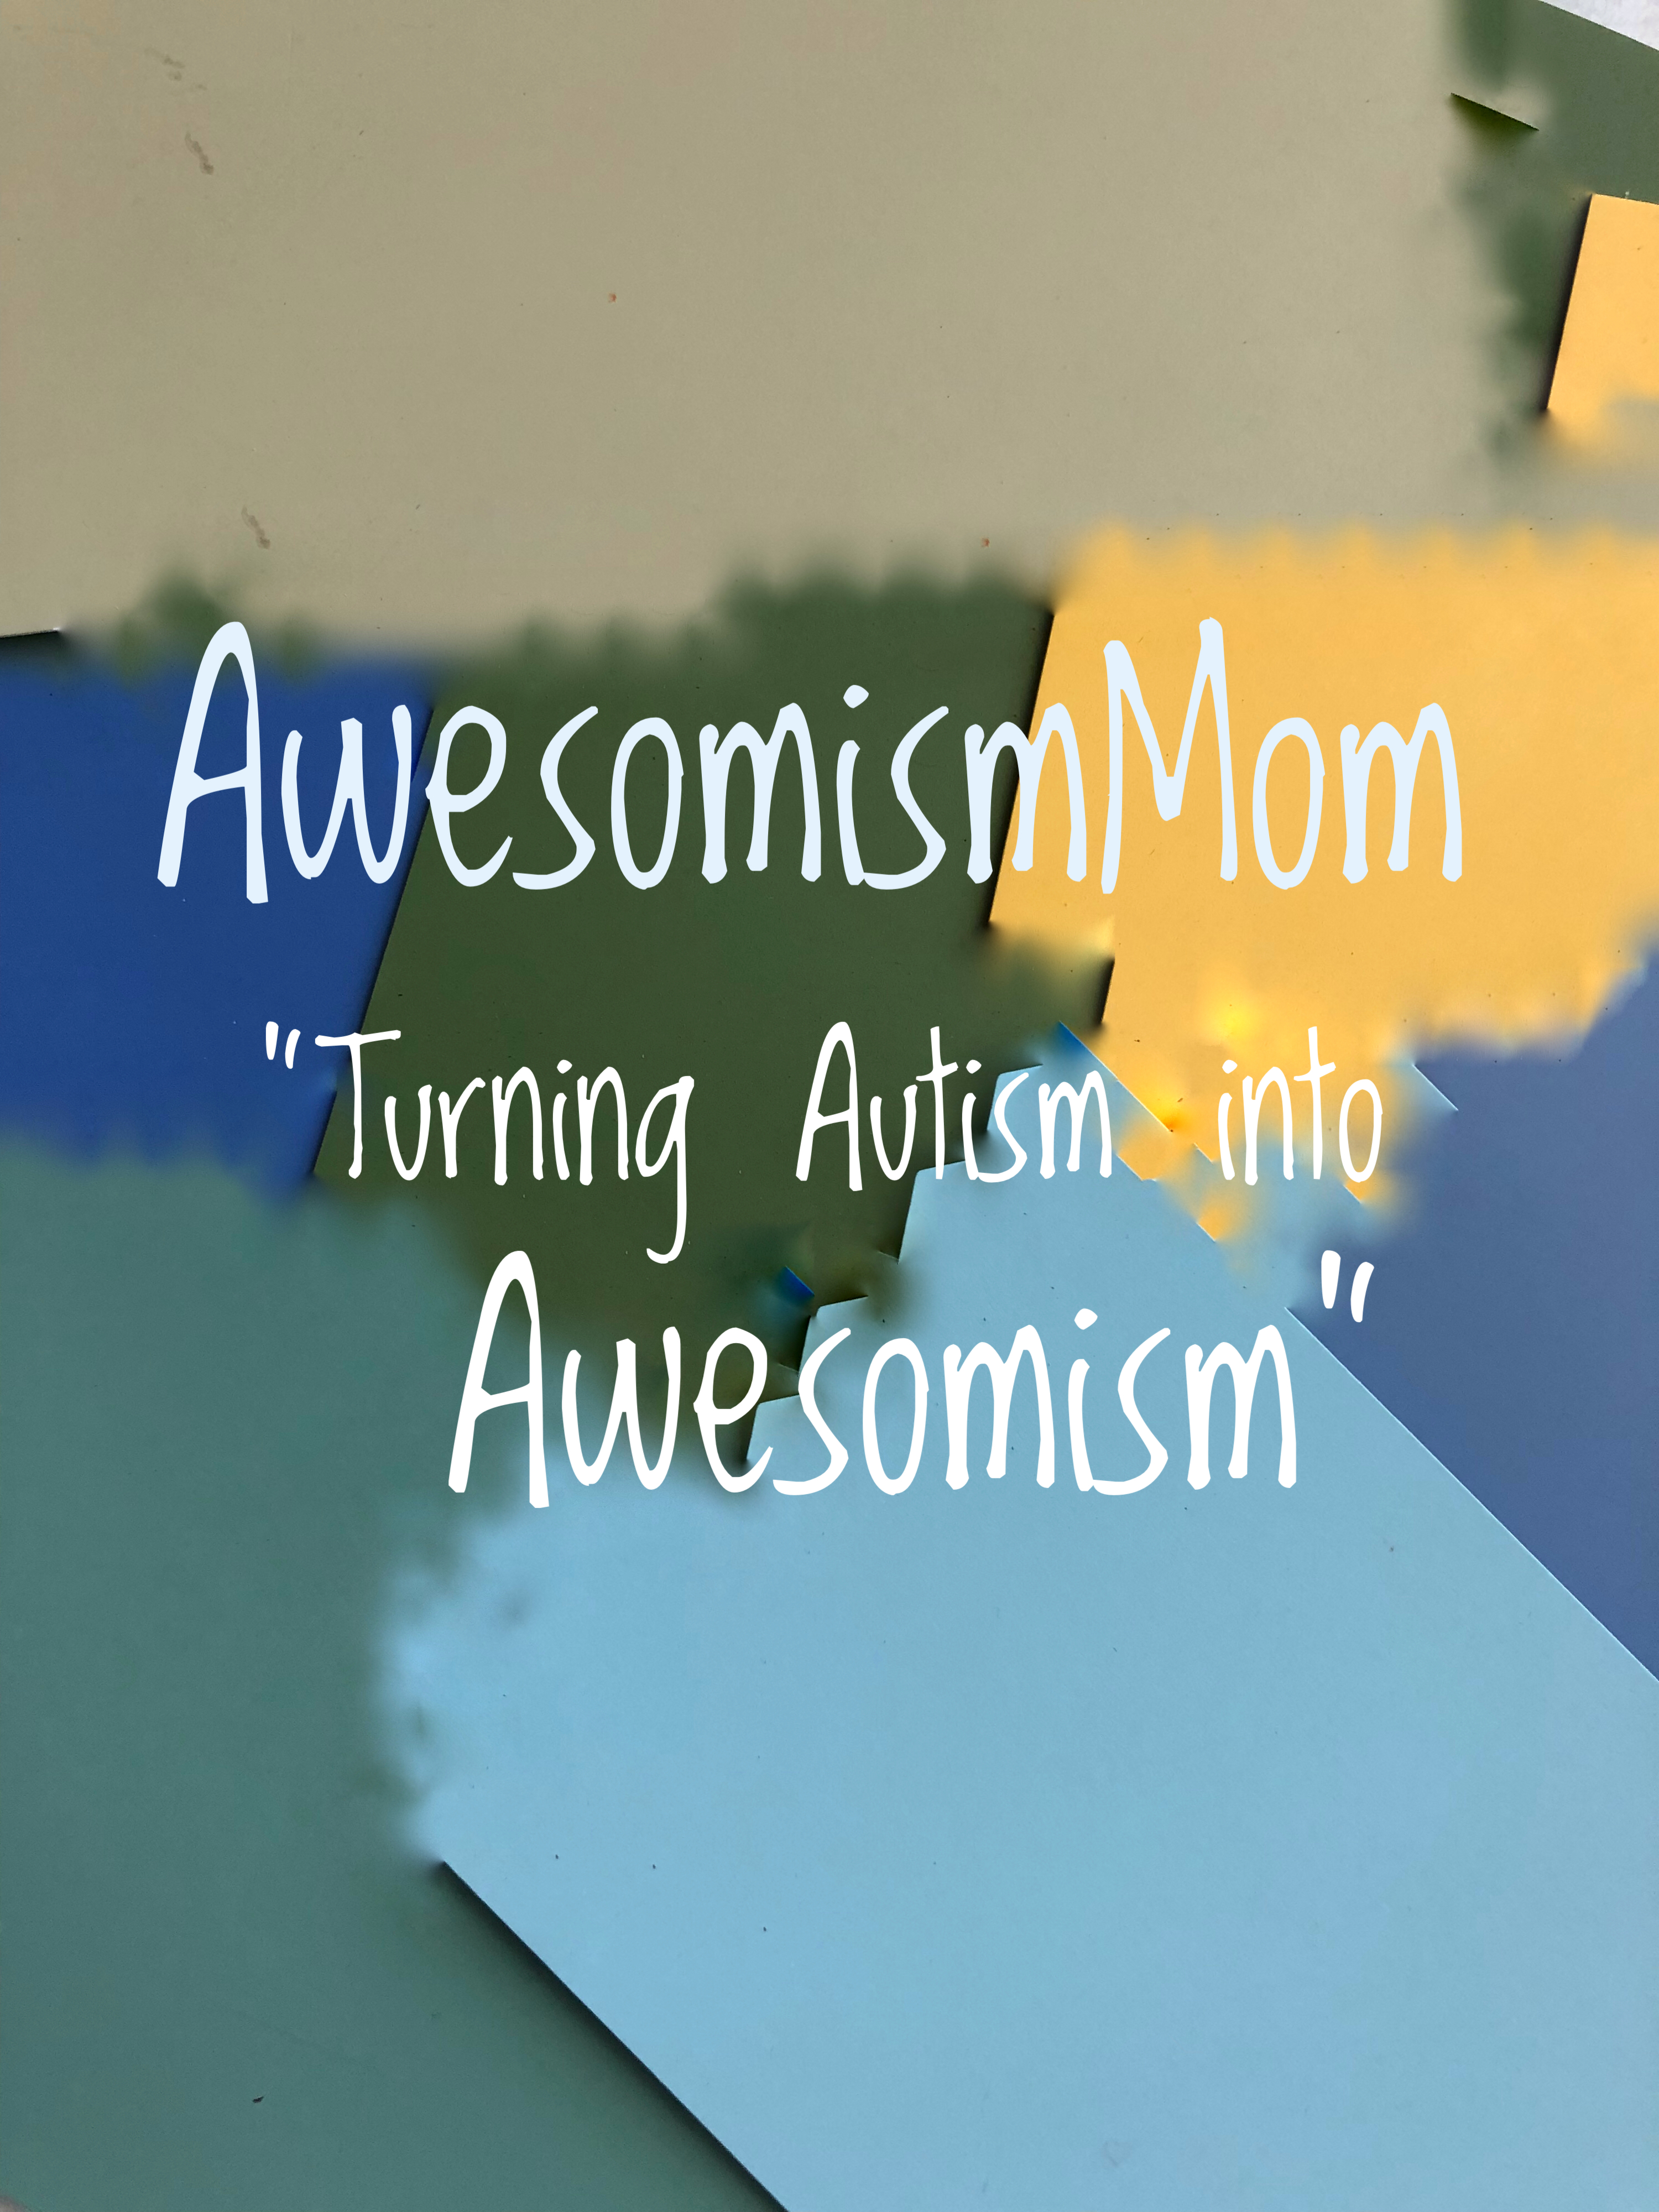 Working To Turn Autism Into Awesomism